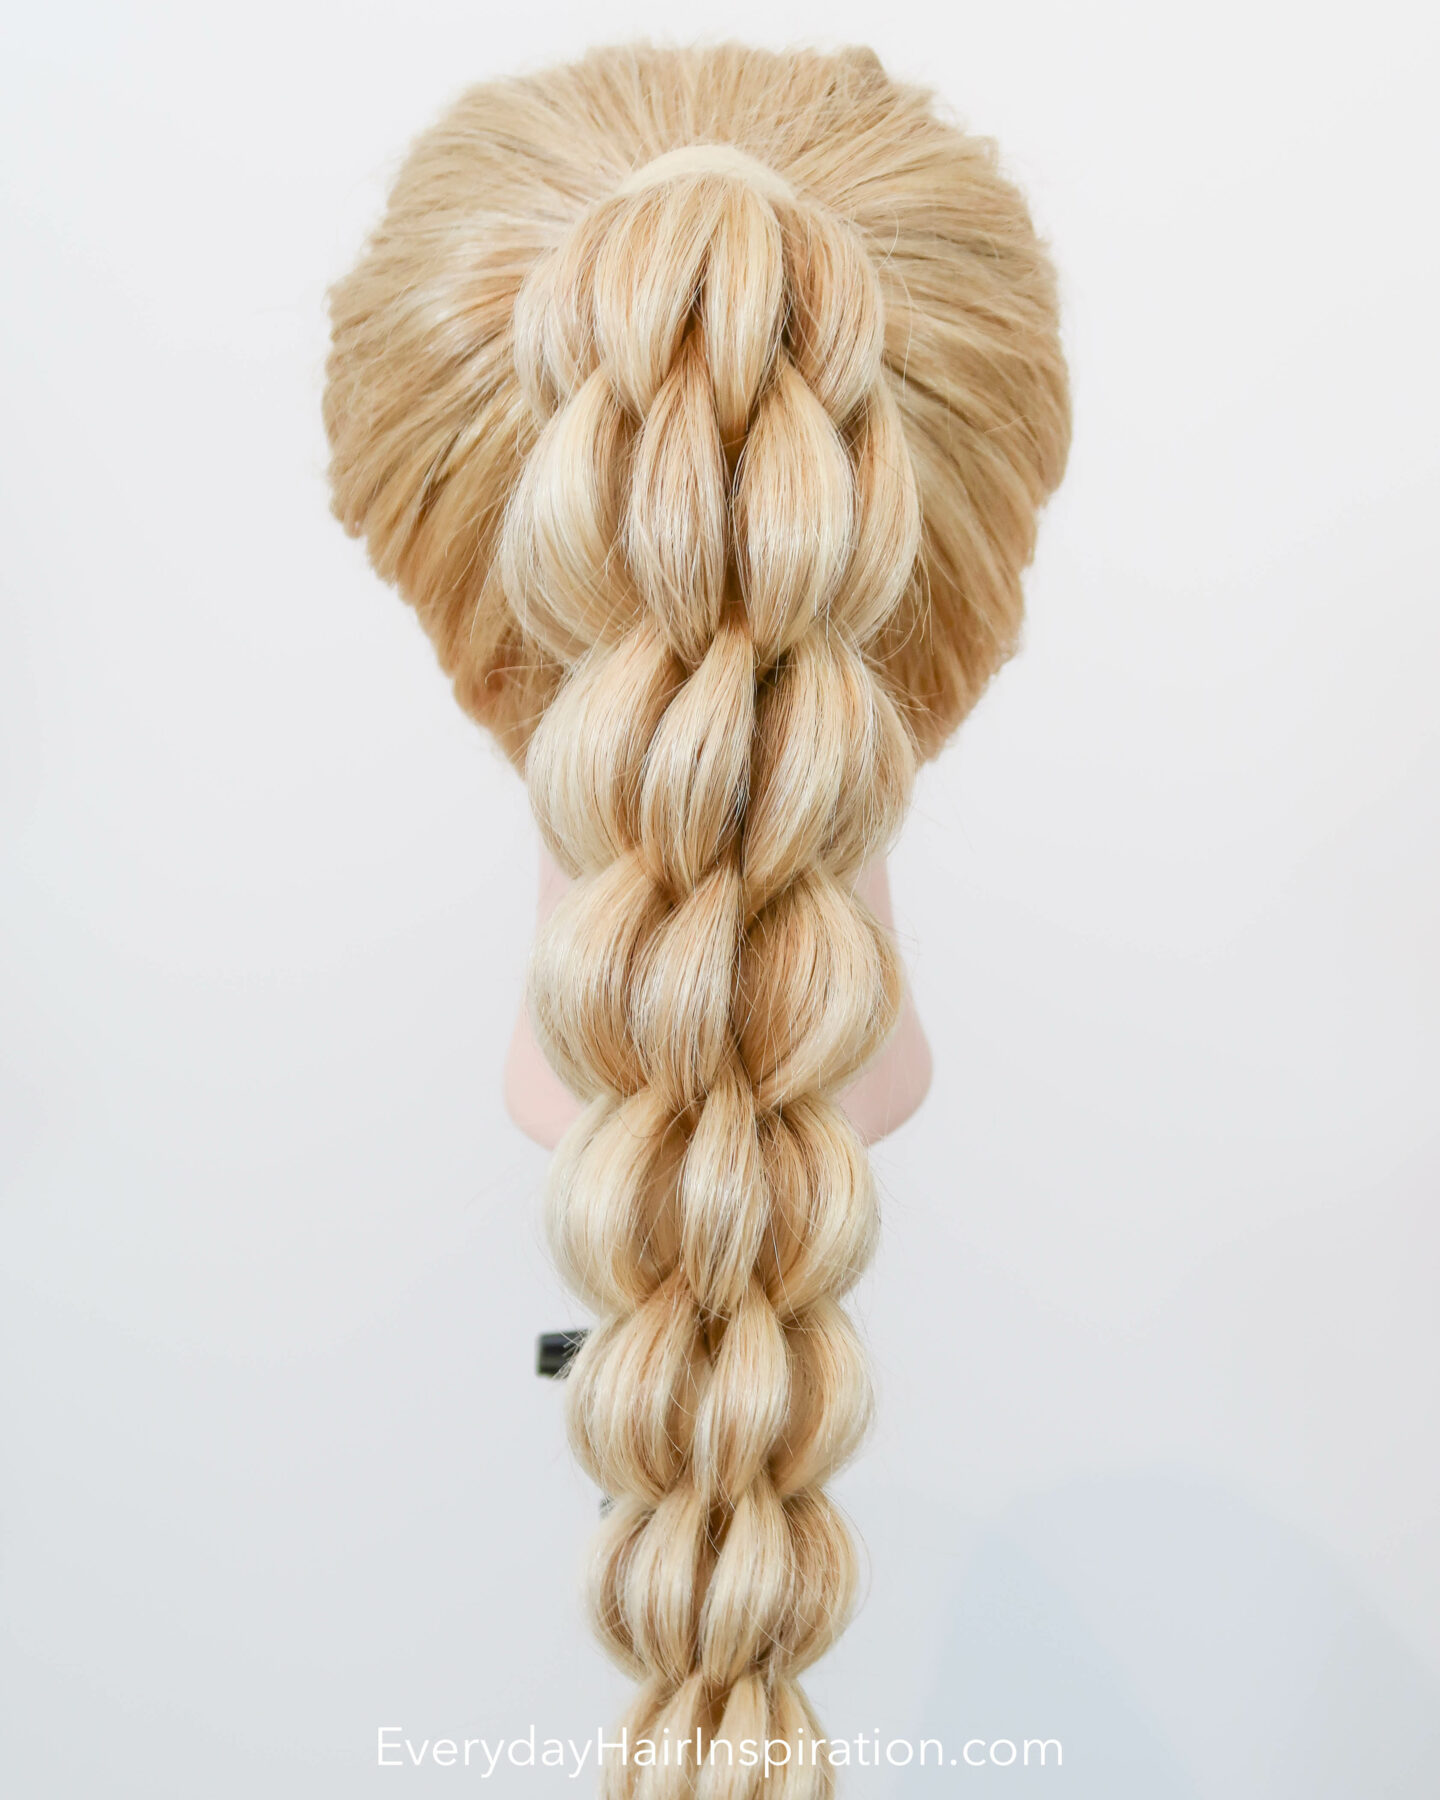 Blonde hairdresser doll seen from the back with a high ponytail in the hair. The ponytail is braided into a 3d pull through braid.